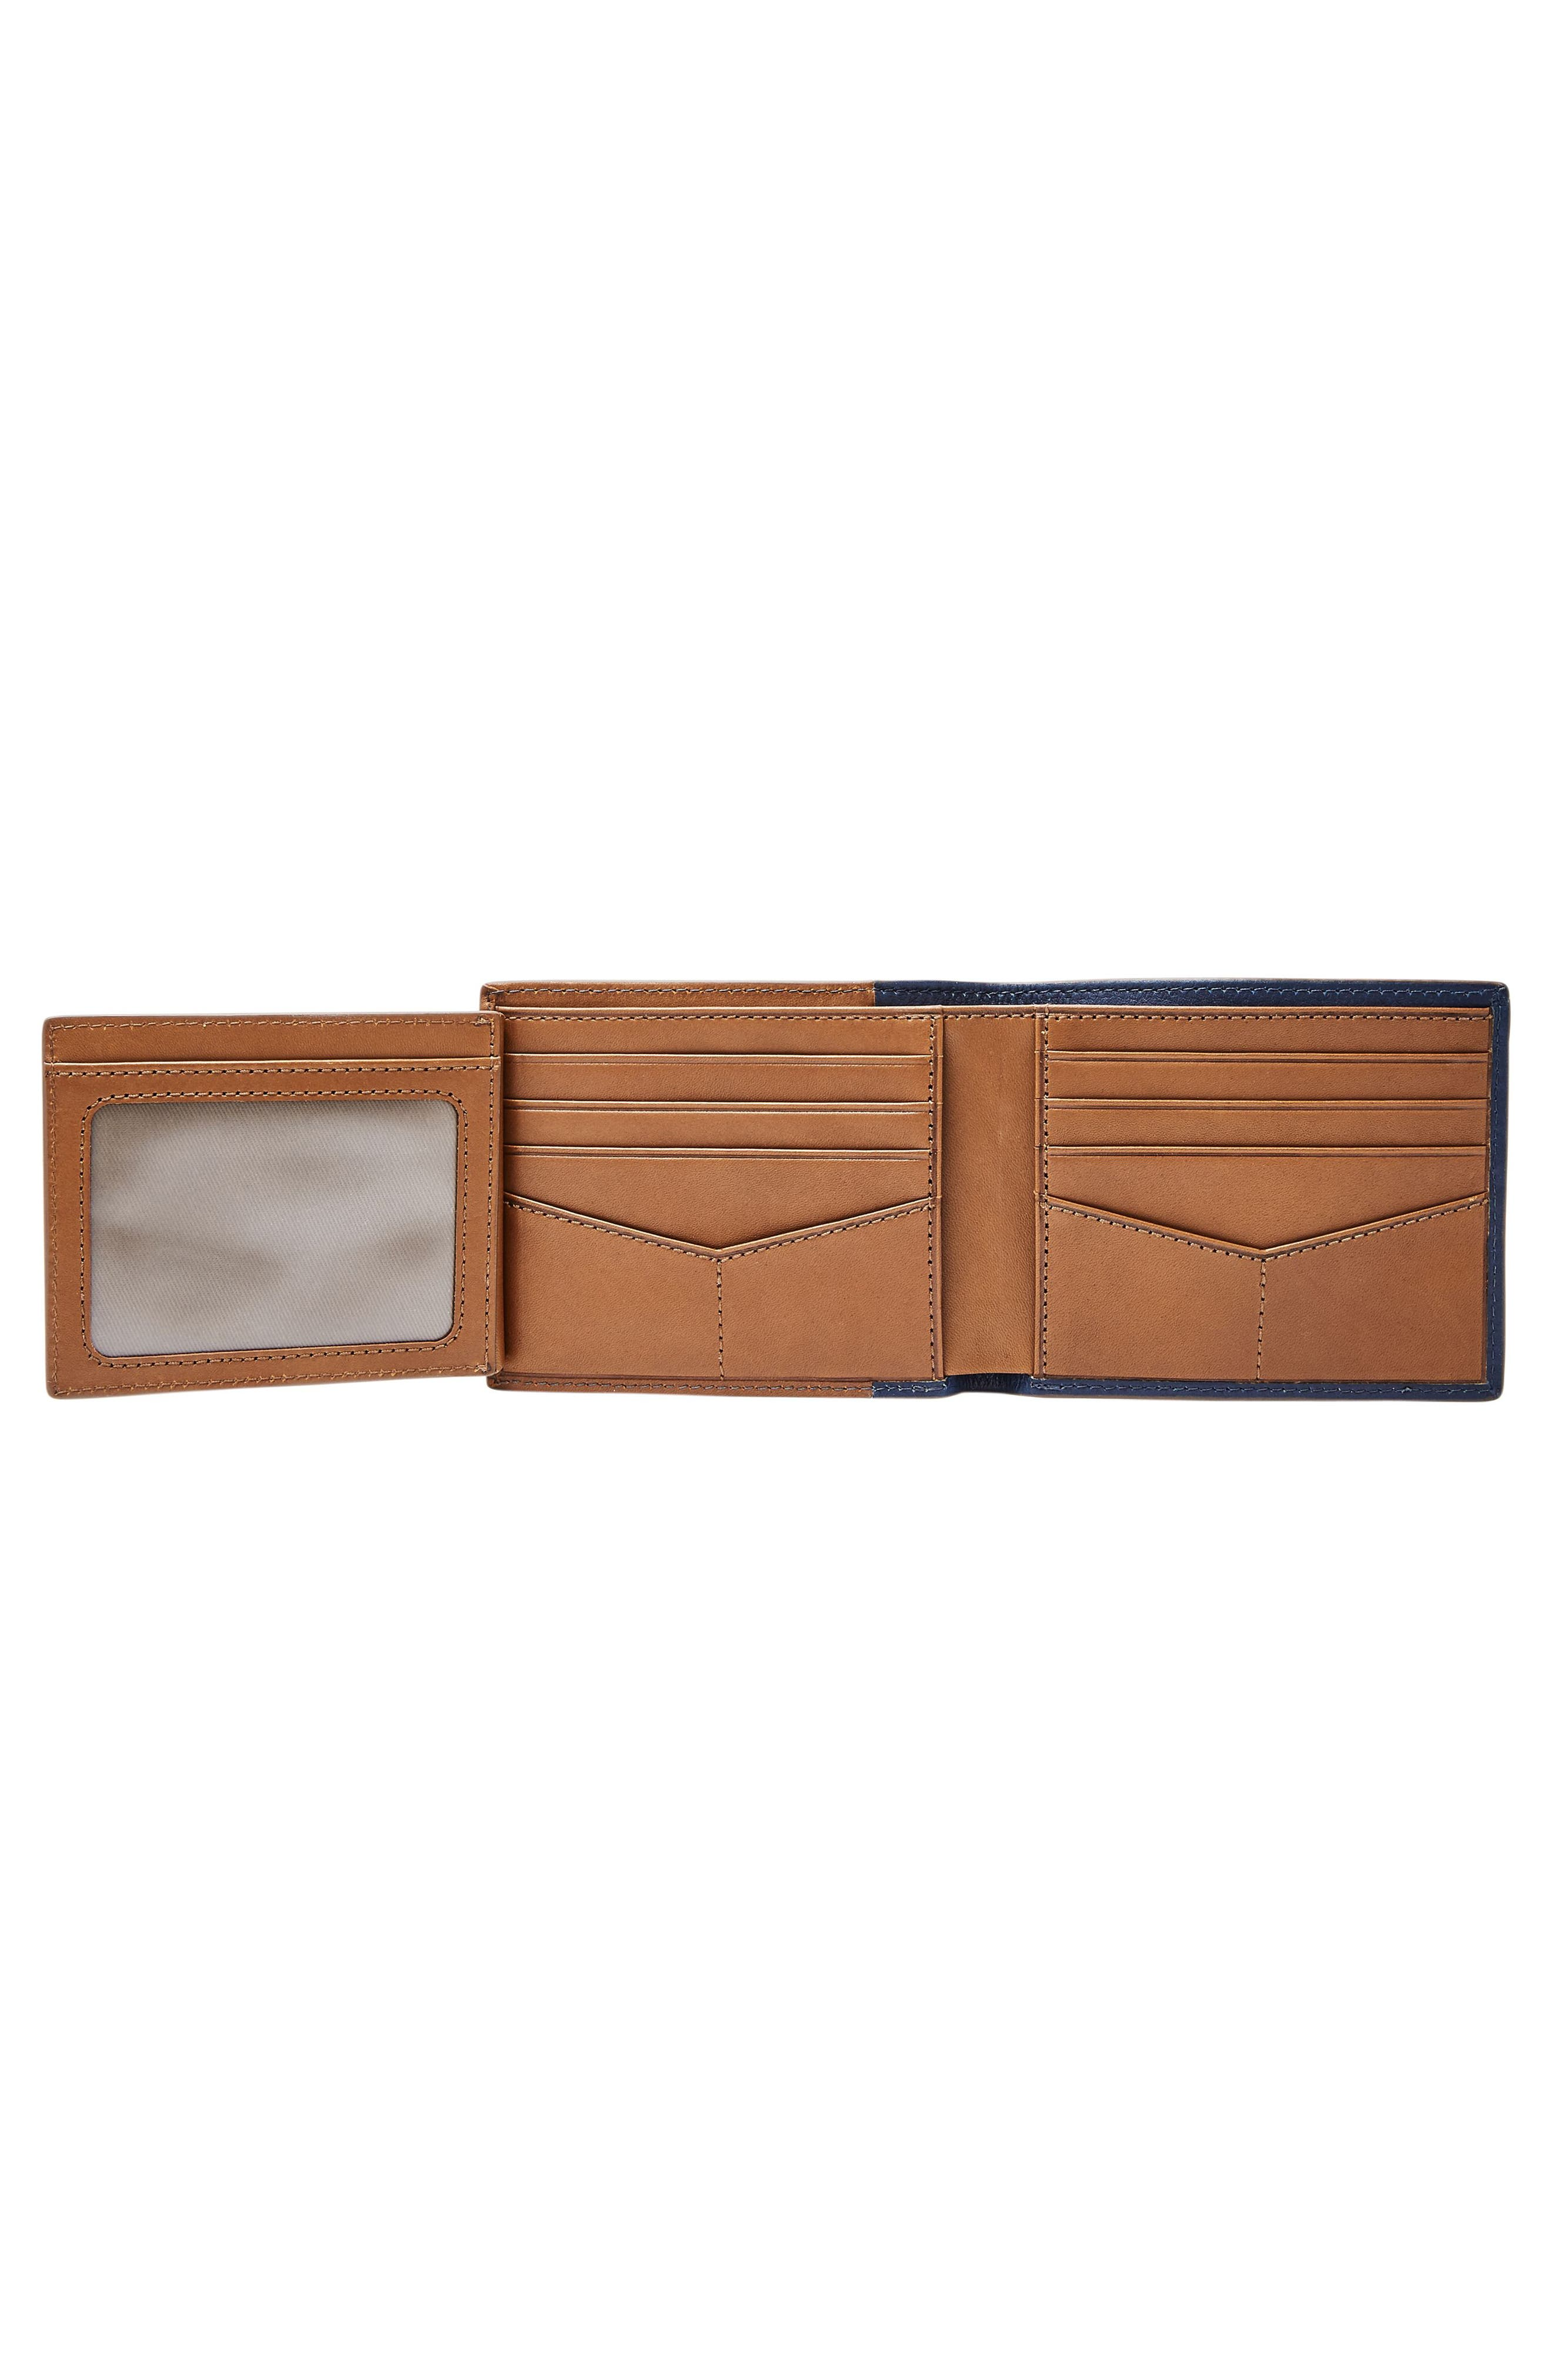 FOSSIL, Ward Leather Wallet, Alternate thumbnail 2, color, NAVY